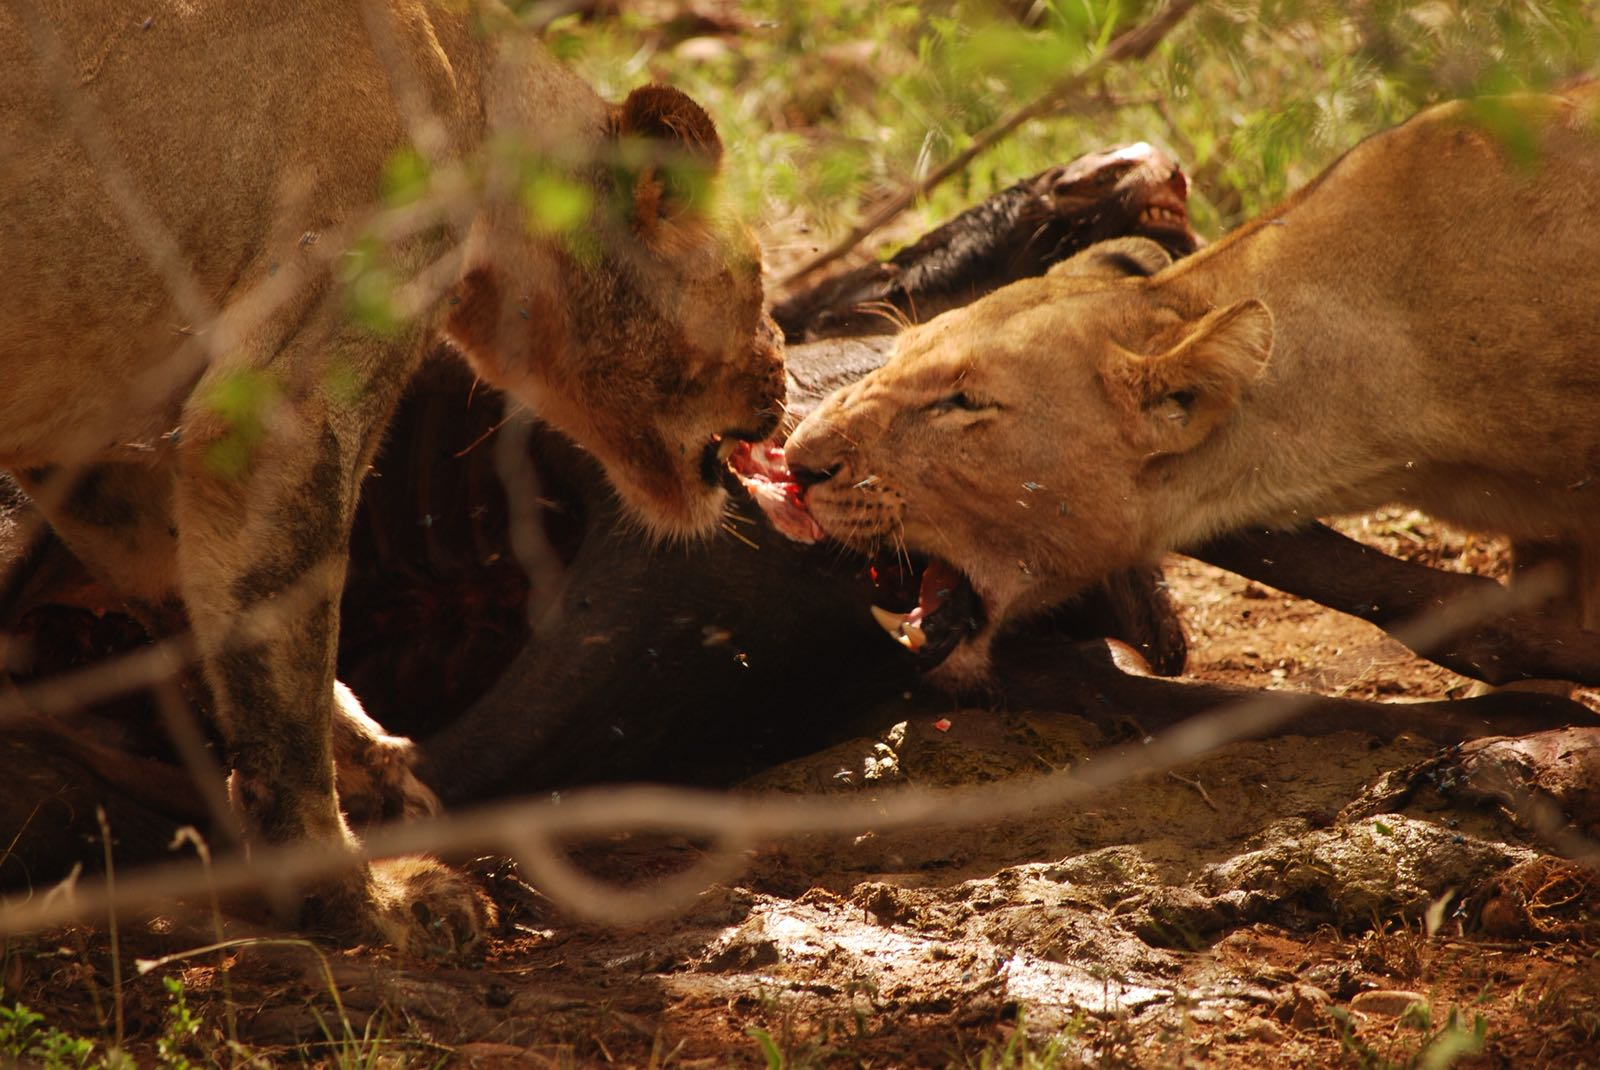 Game drives are kicked off with a BANG